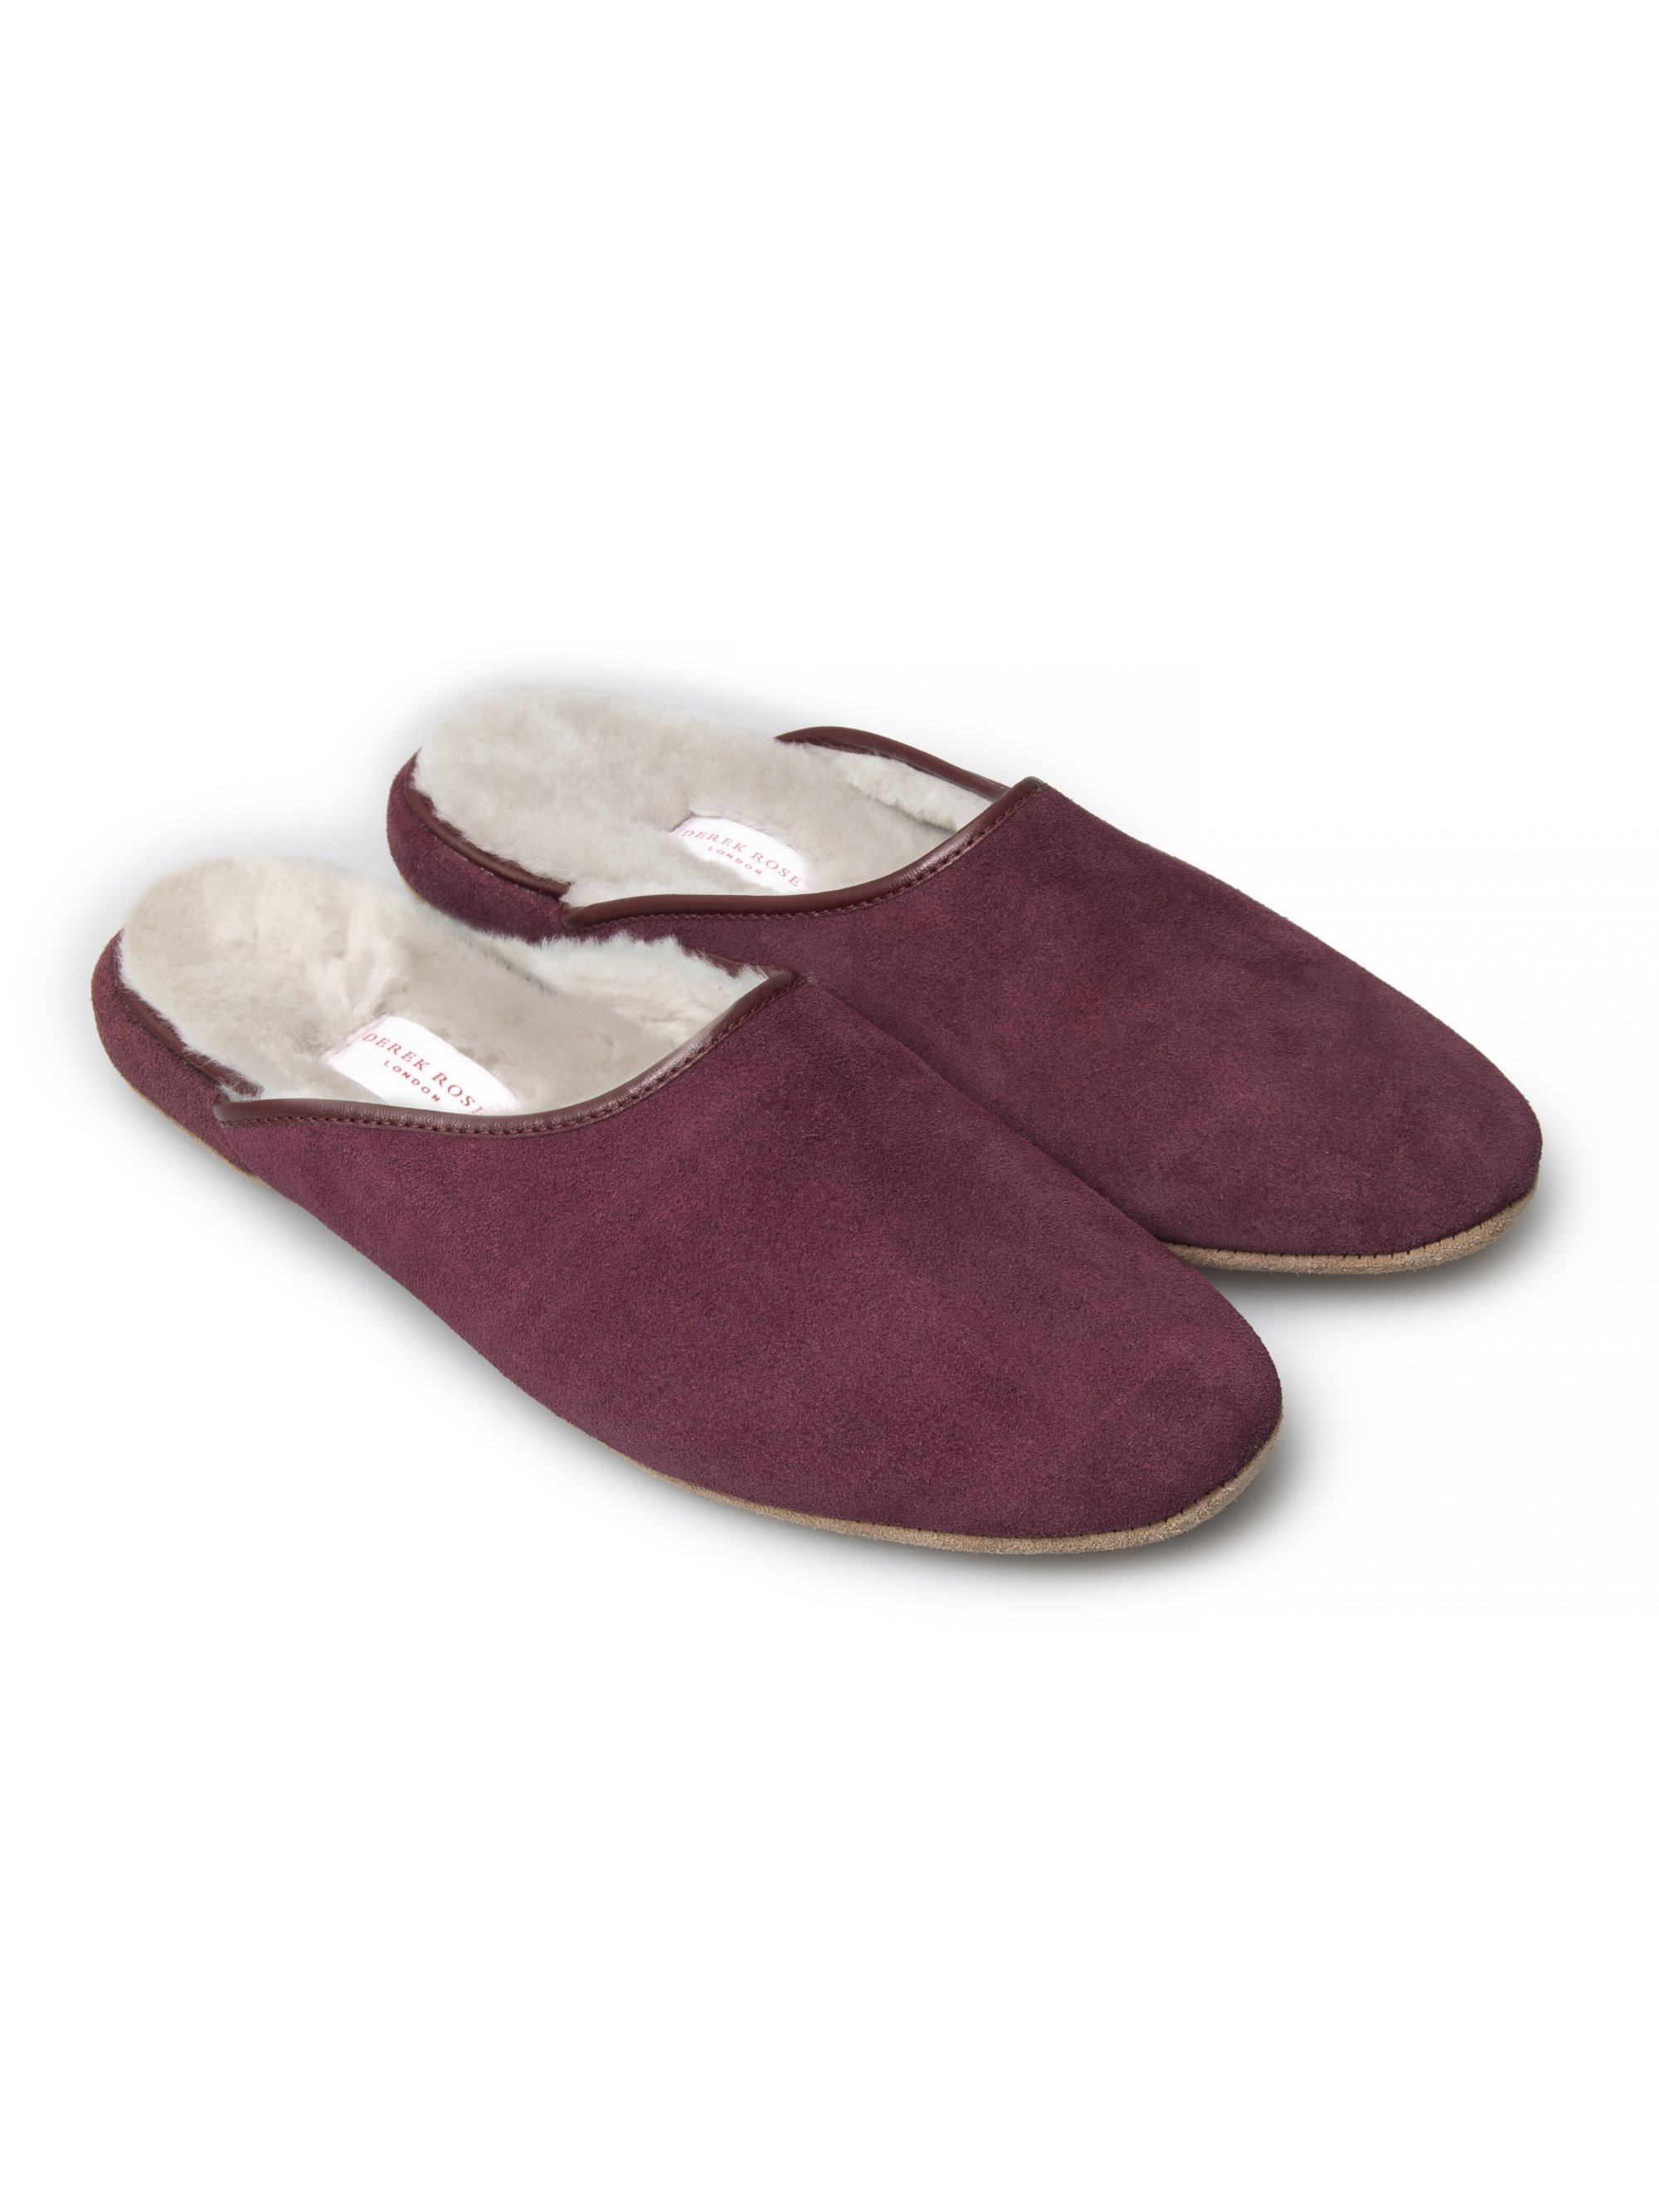 Men's Open-Back Slipper Douglas Suede Sheepskin Bordeaux